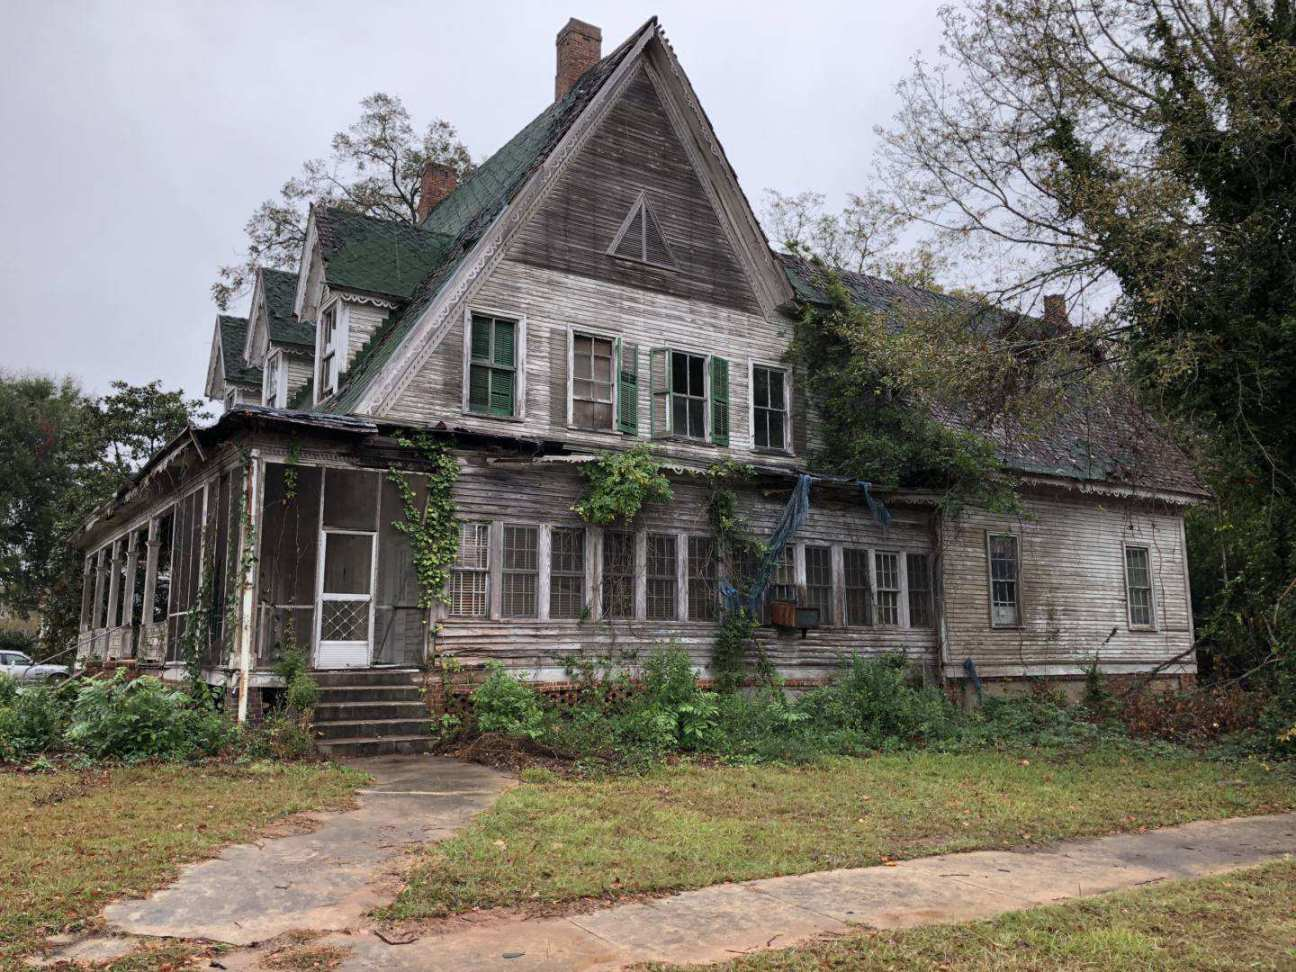 Georgia 1876 Gothic Revival Fixer Upper